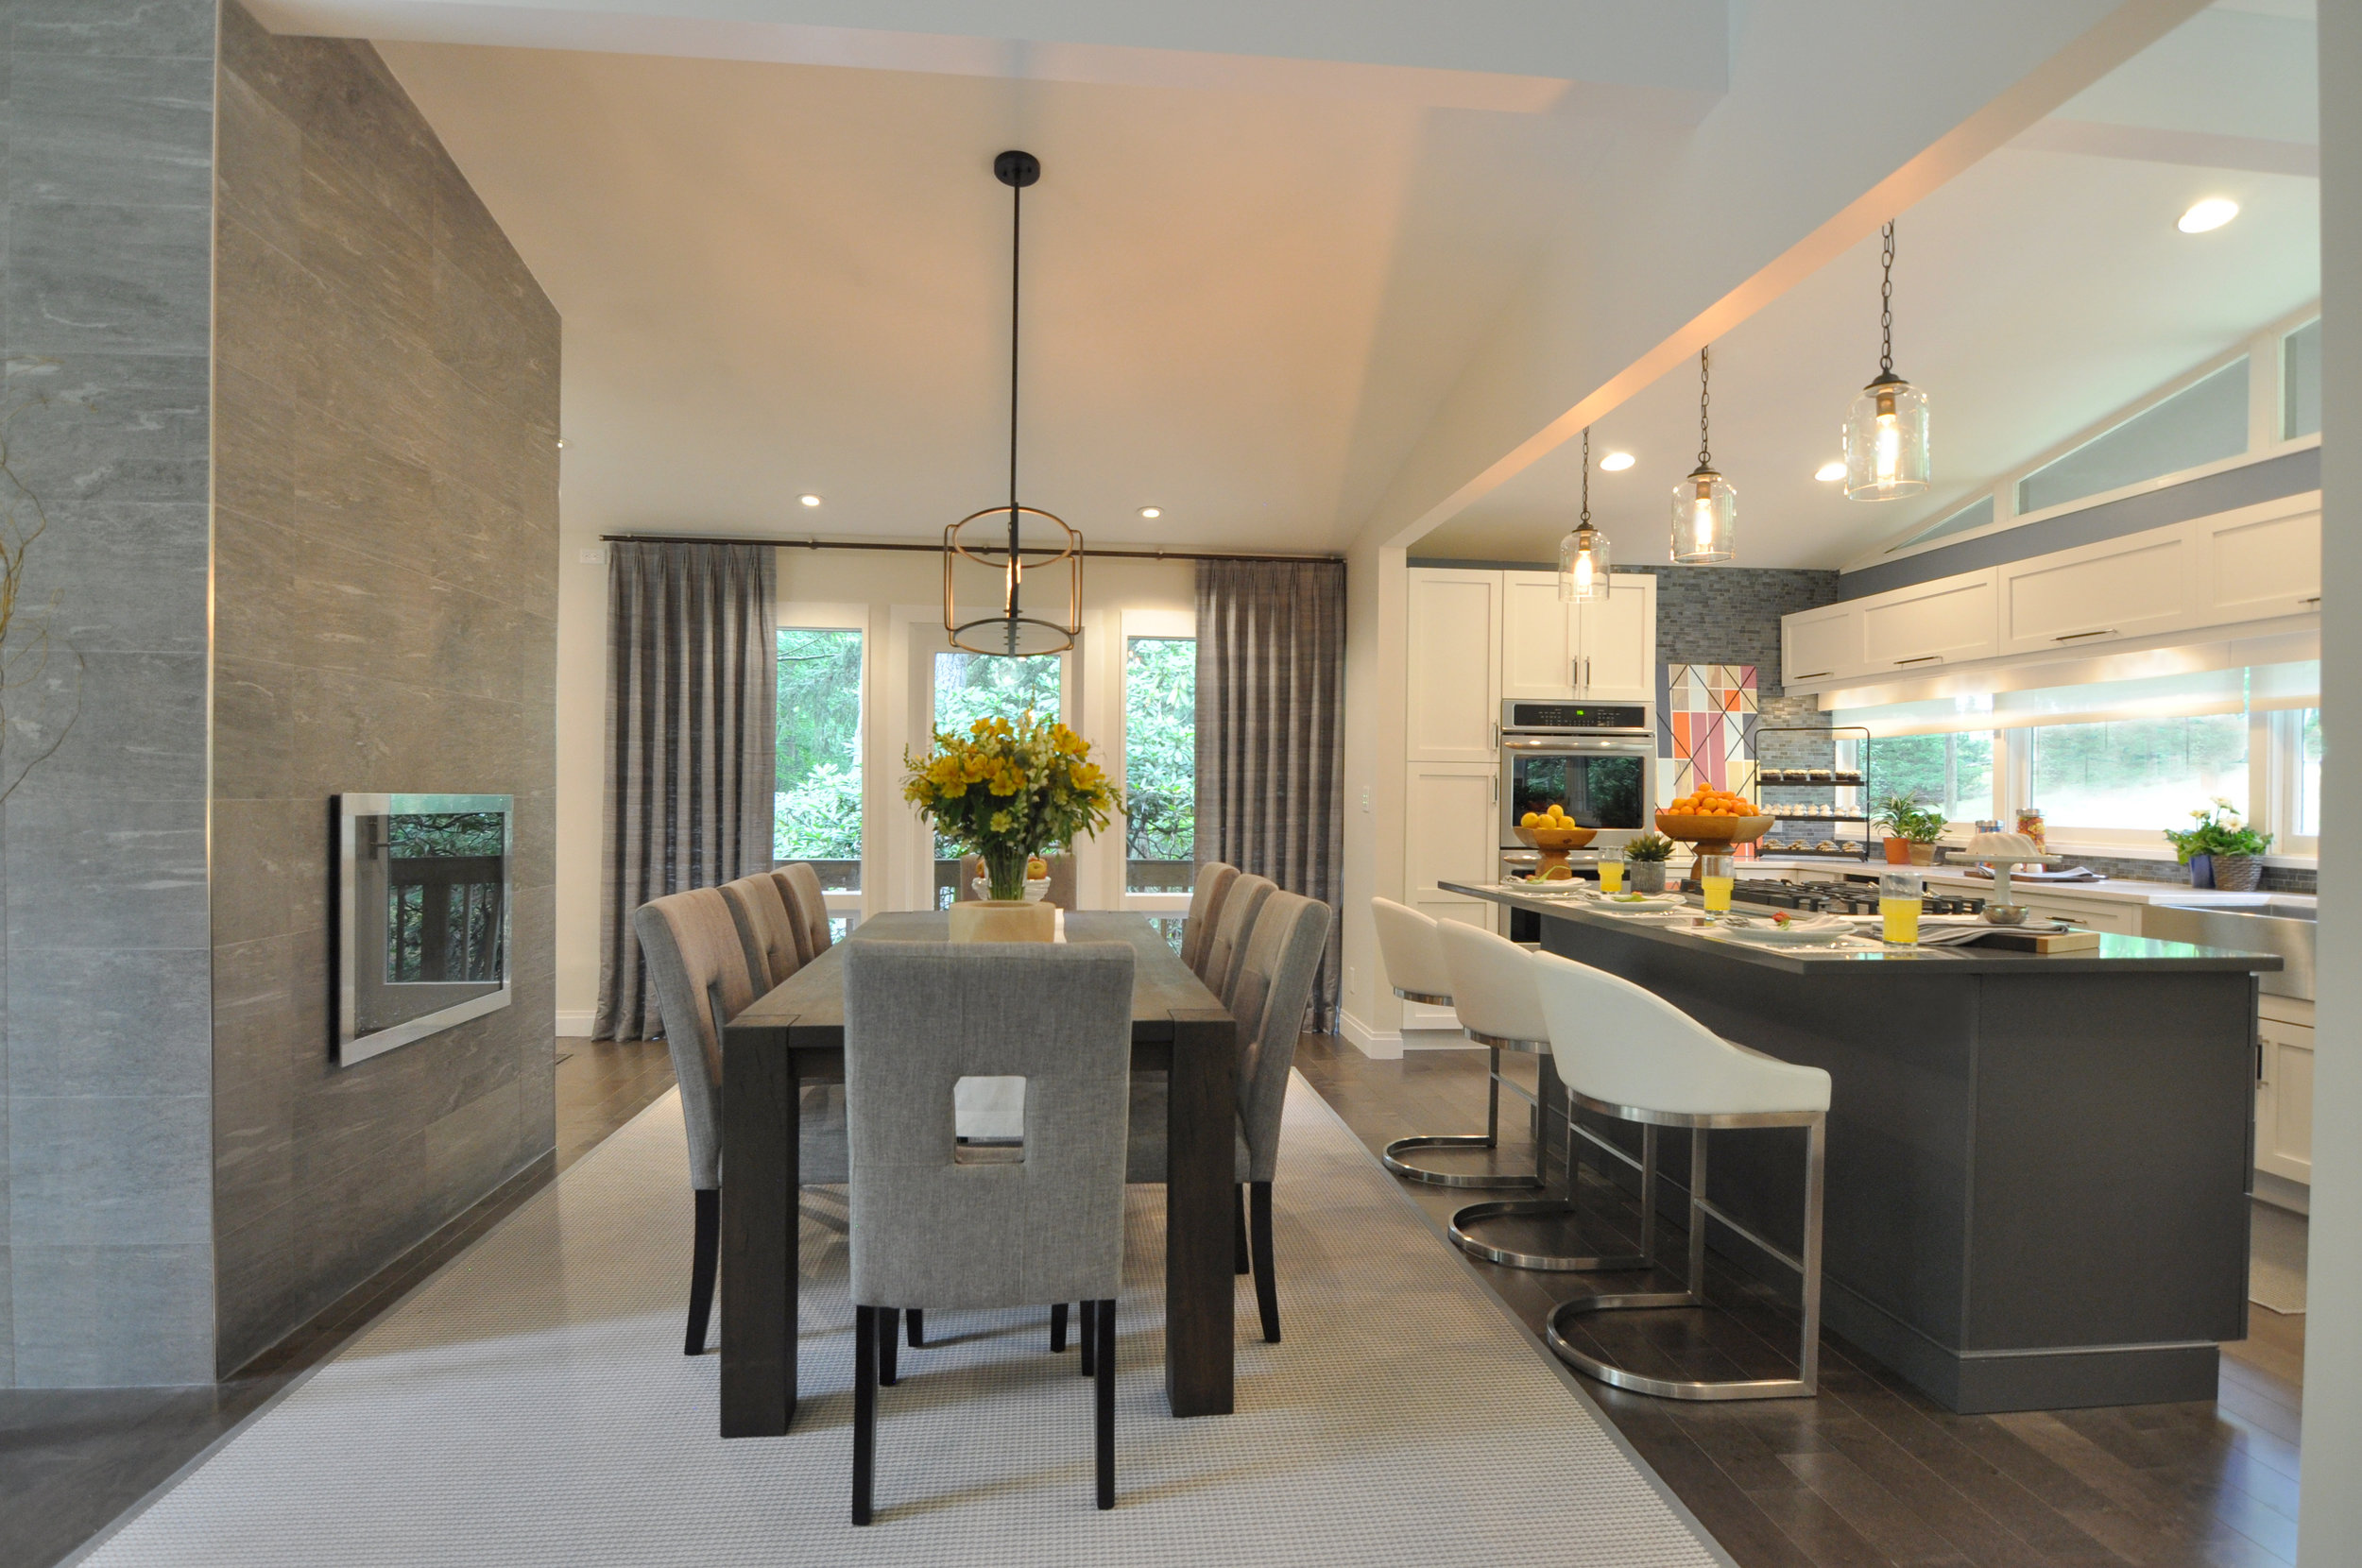 Kim A Mitchell_Design Lead_The Property Brothers_Season 6_Episode 9_Modern Dining Room_Tile Fireplace Wall_Gas Fireplace_Open to Kitchen_Scandecor Rug_Blue Gray Dining Room_2017.jpg